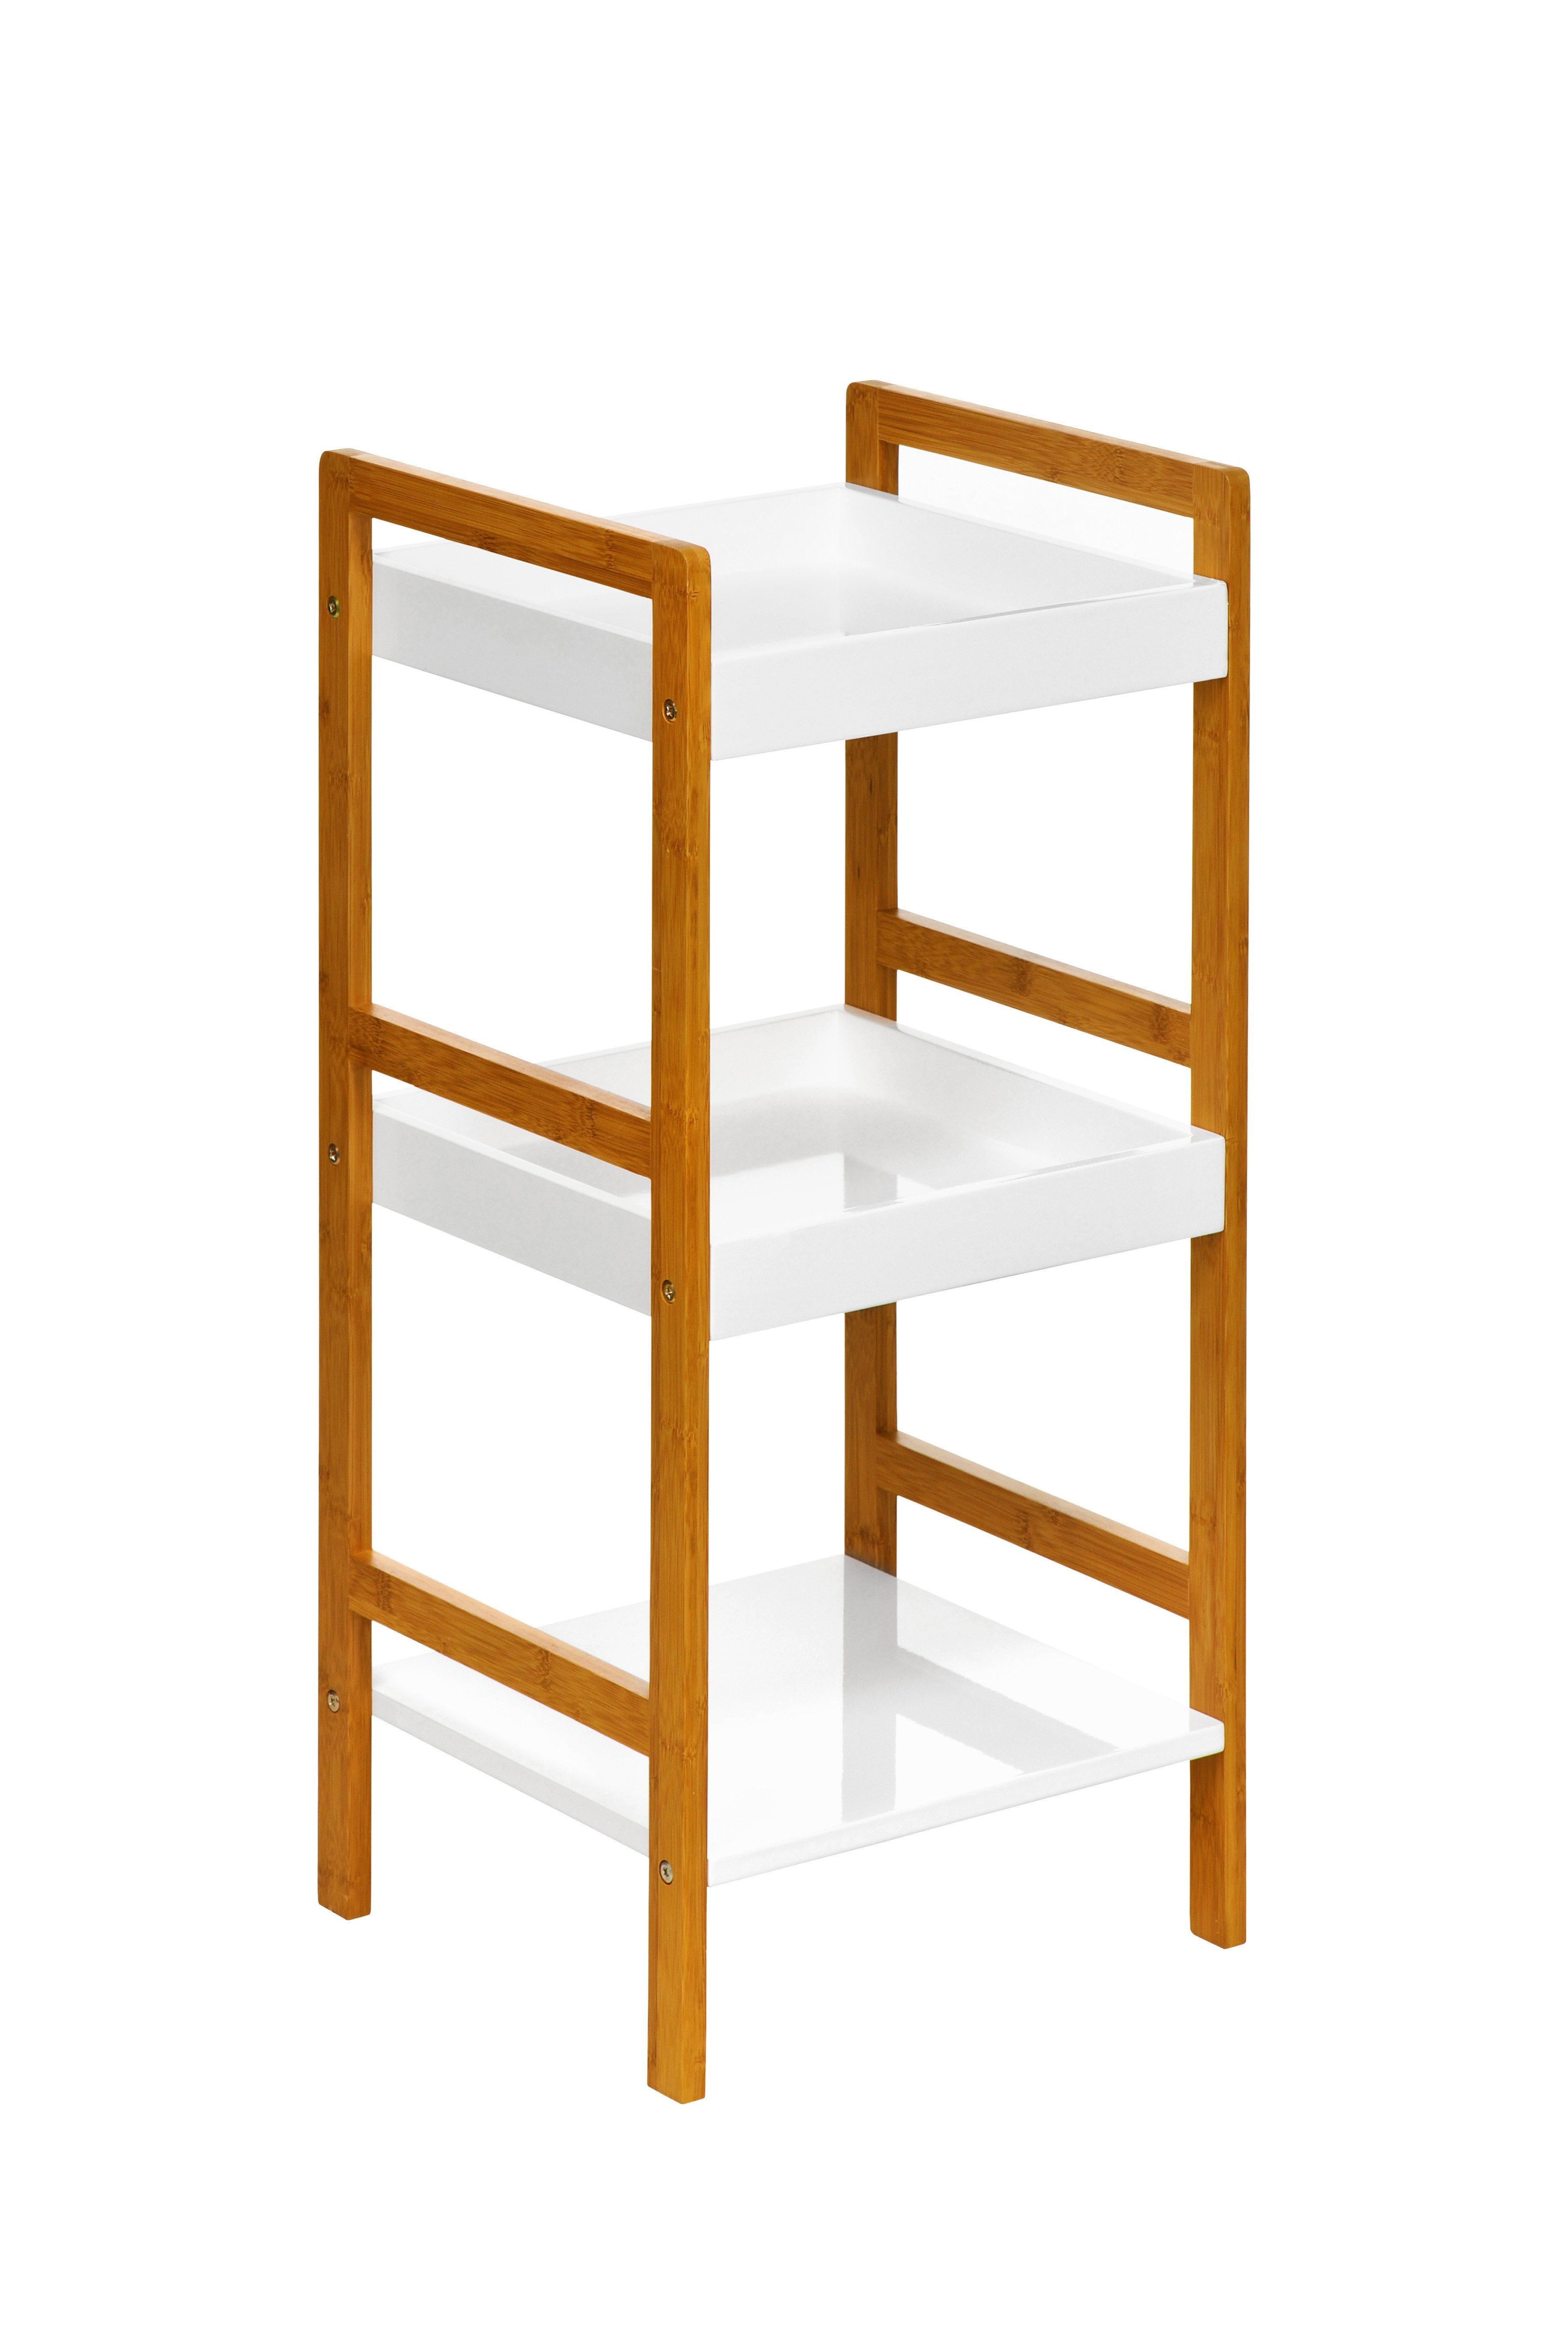 Prime Furnishing 3-Tier Shelf Unit, Bamboo - White